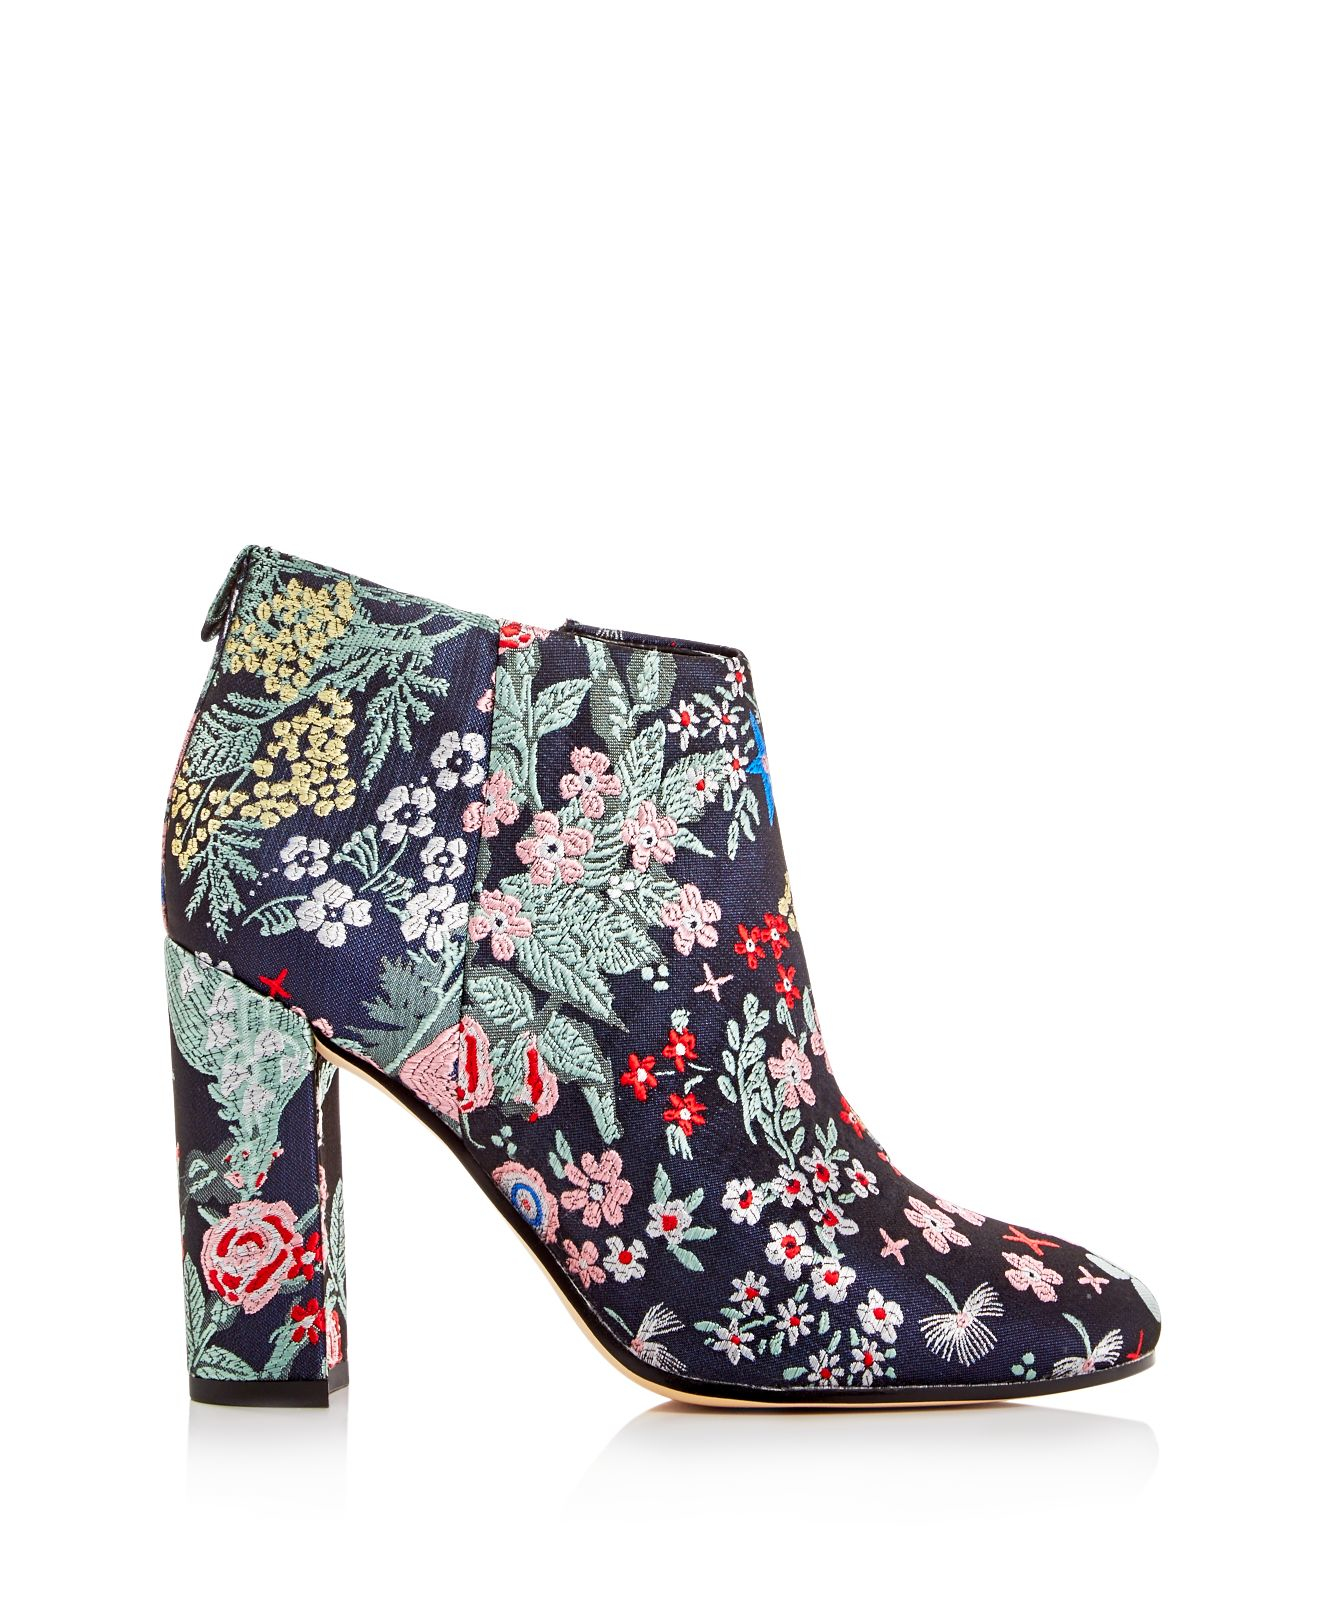 28c21cd109b89 Sam Edelman Campbell Floral Jacquard Block Heel Booties in Blue - Lyst